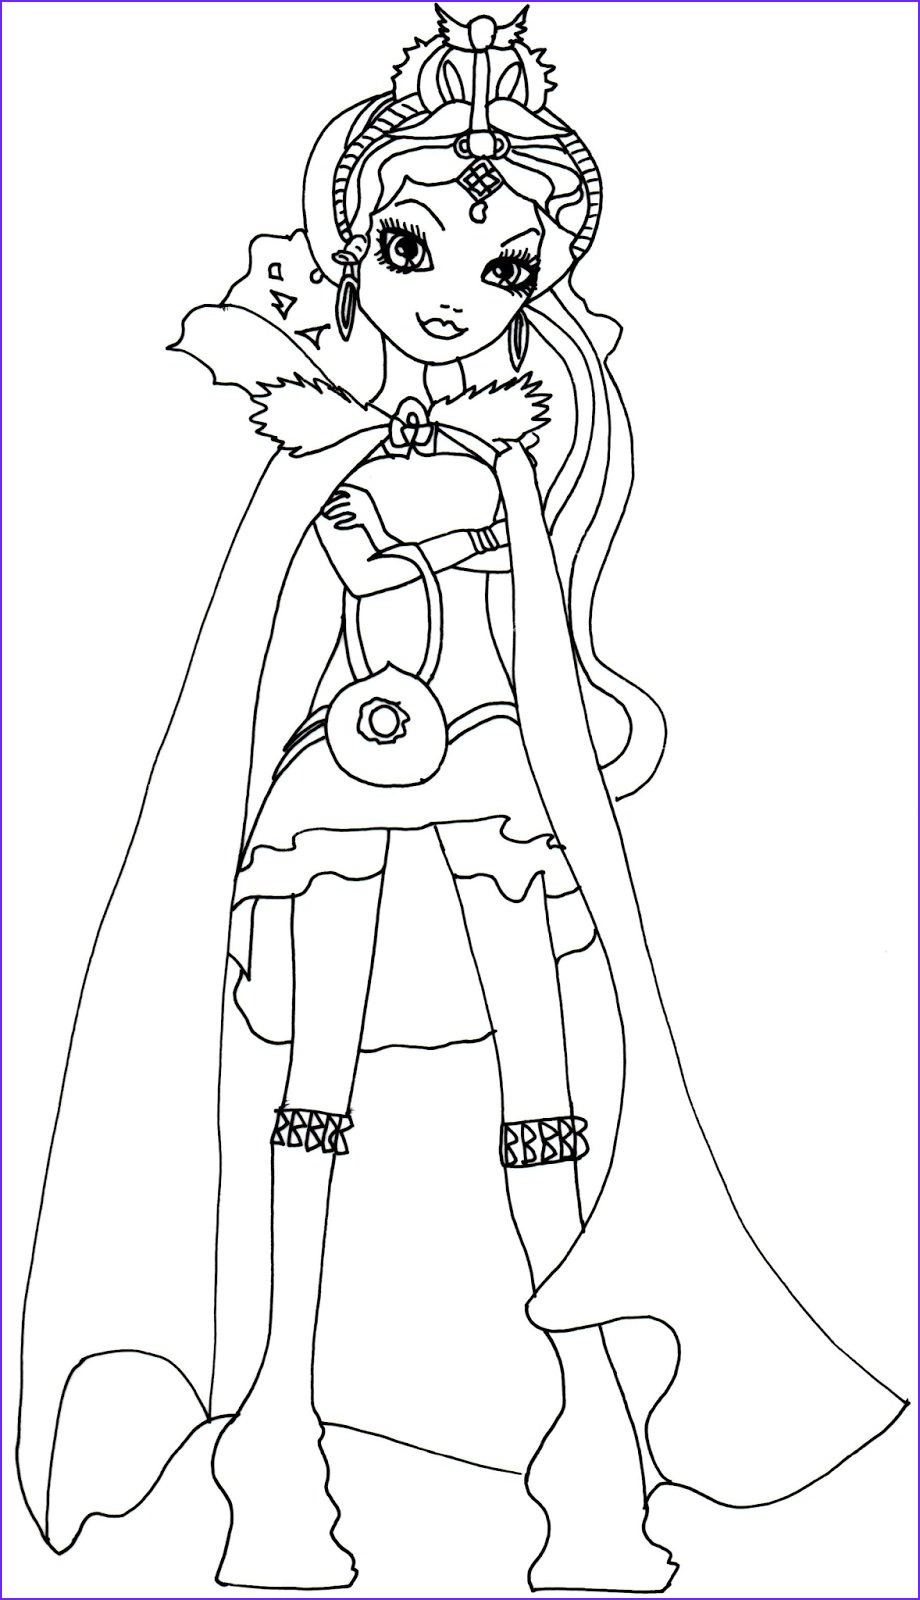 Queen Coloring Page Beautiful Photos Free Printable Ever after High Coloring Pages Raven Queen